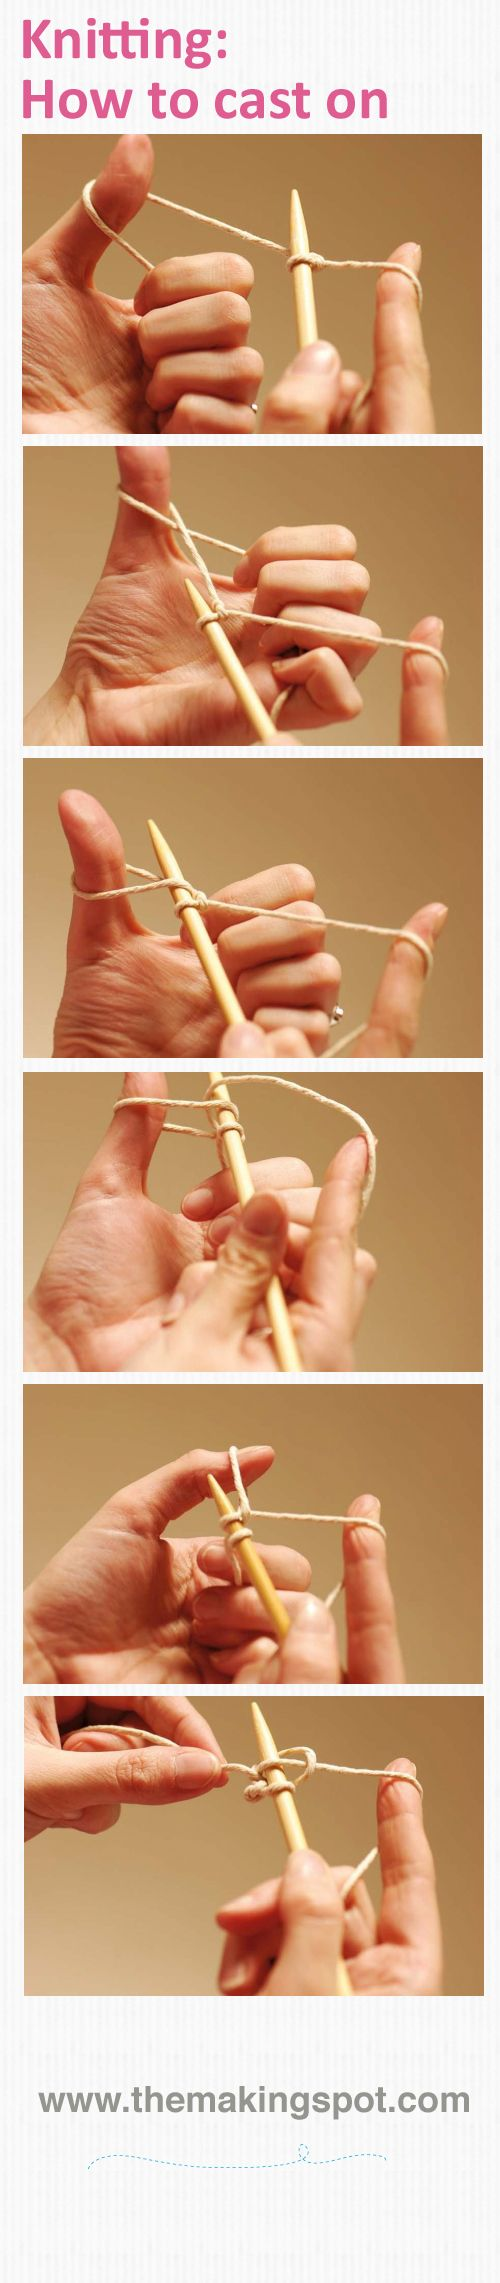 Knitting For Beginners Step By Step : How to cast on full step by guide here http